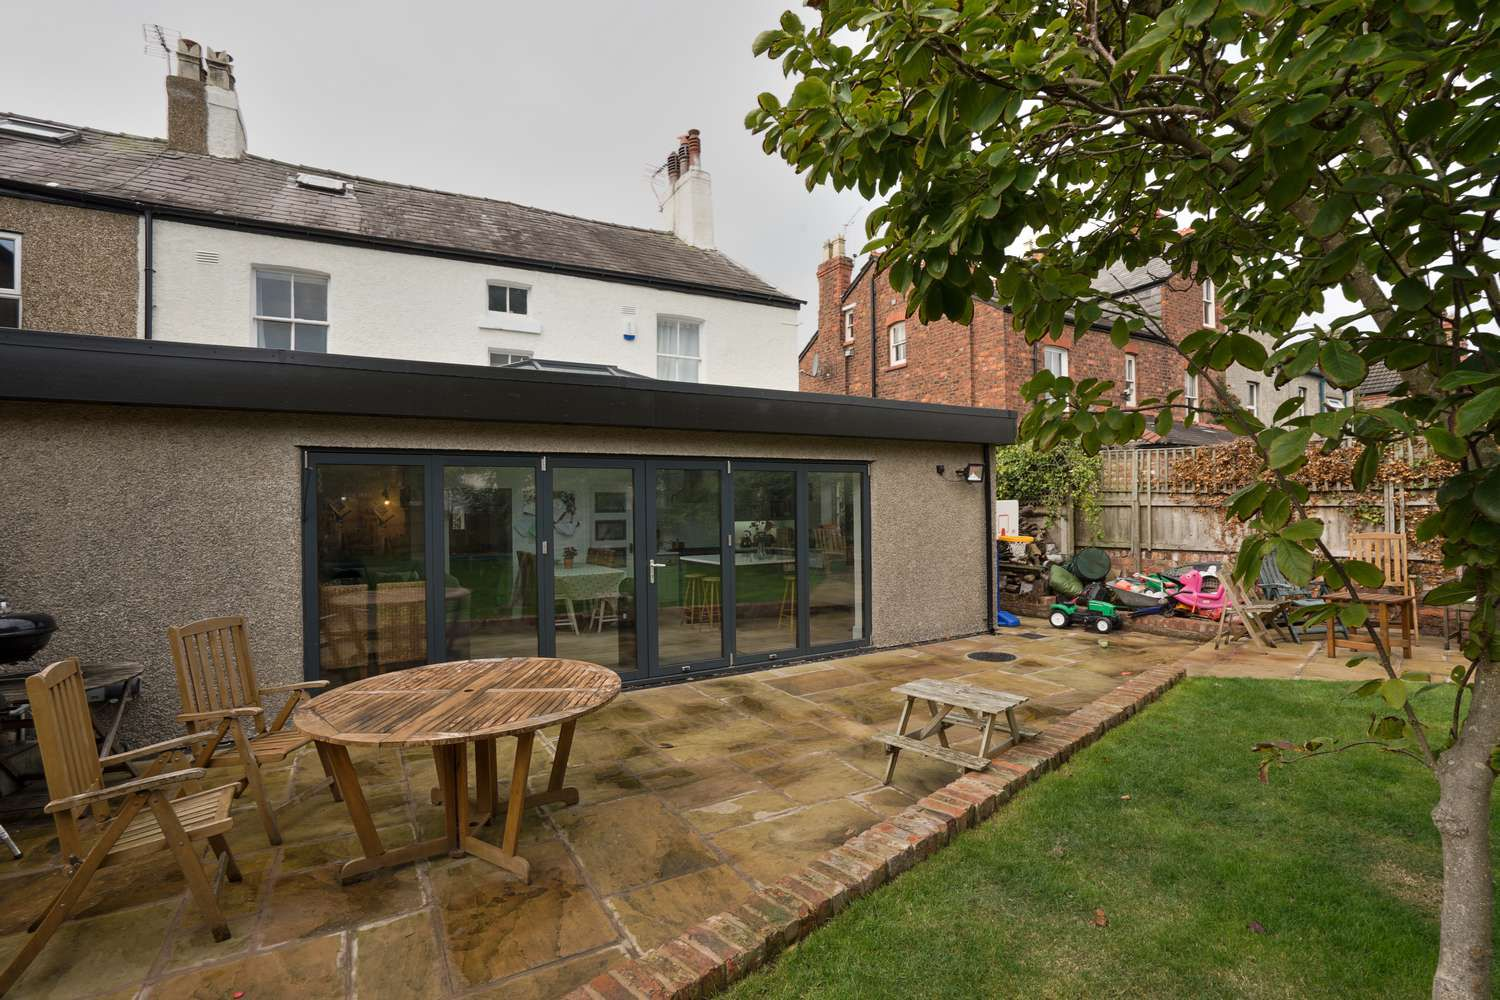 External picture showing large set of aluminium bifold doors on a completed orangery and groundworks.